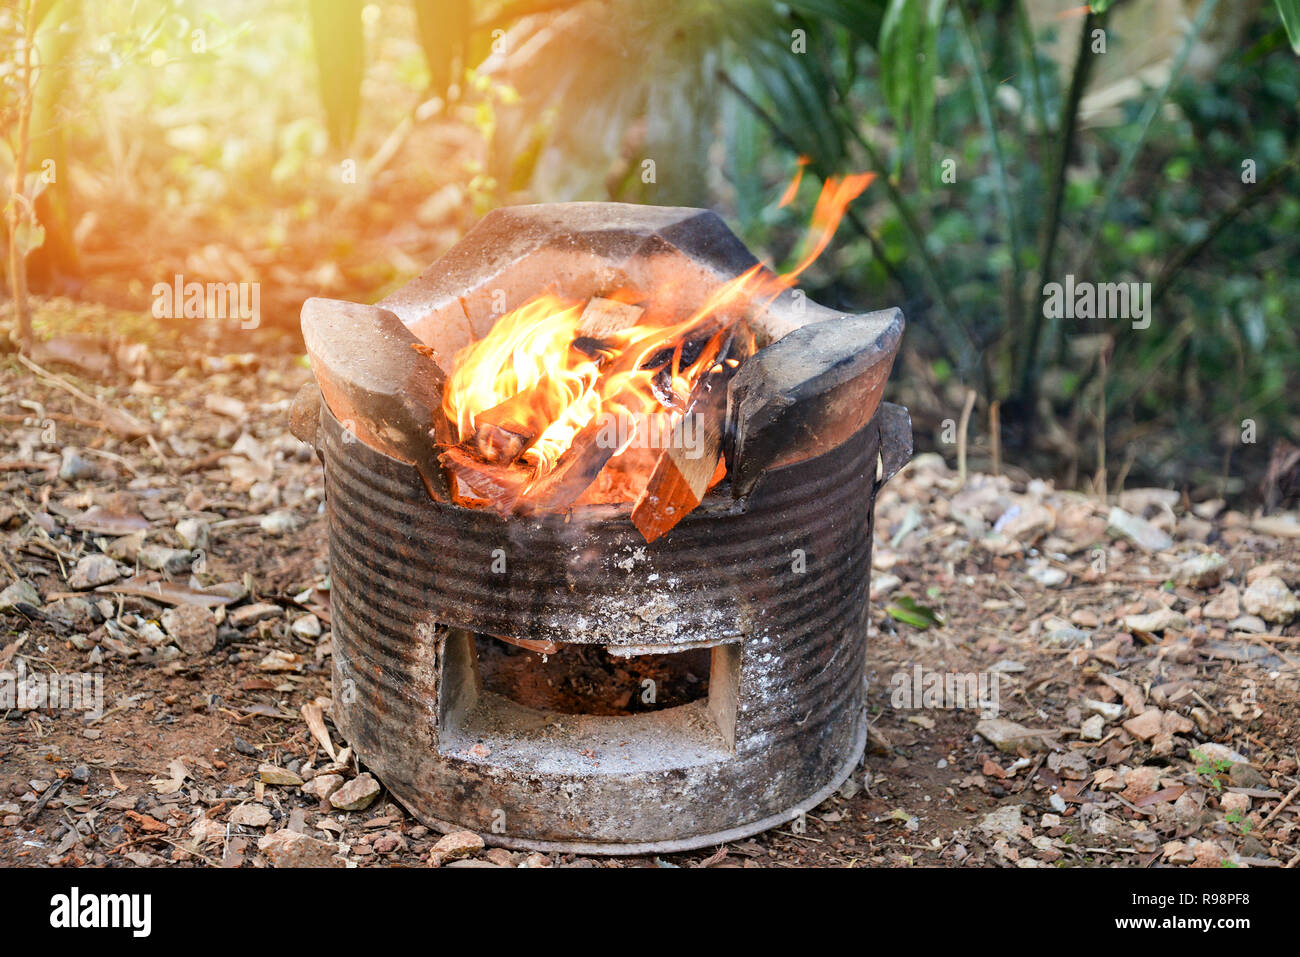 stove fire outdoors / bonfire on old stove baked clay with firewood burn for cooking in camping - stove asia - Stock Image